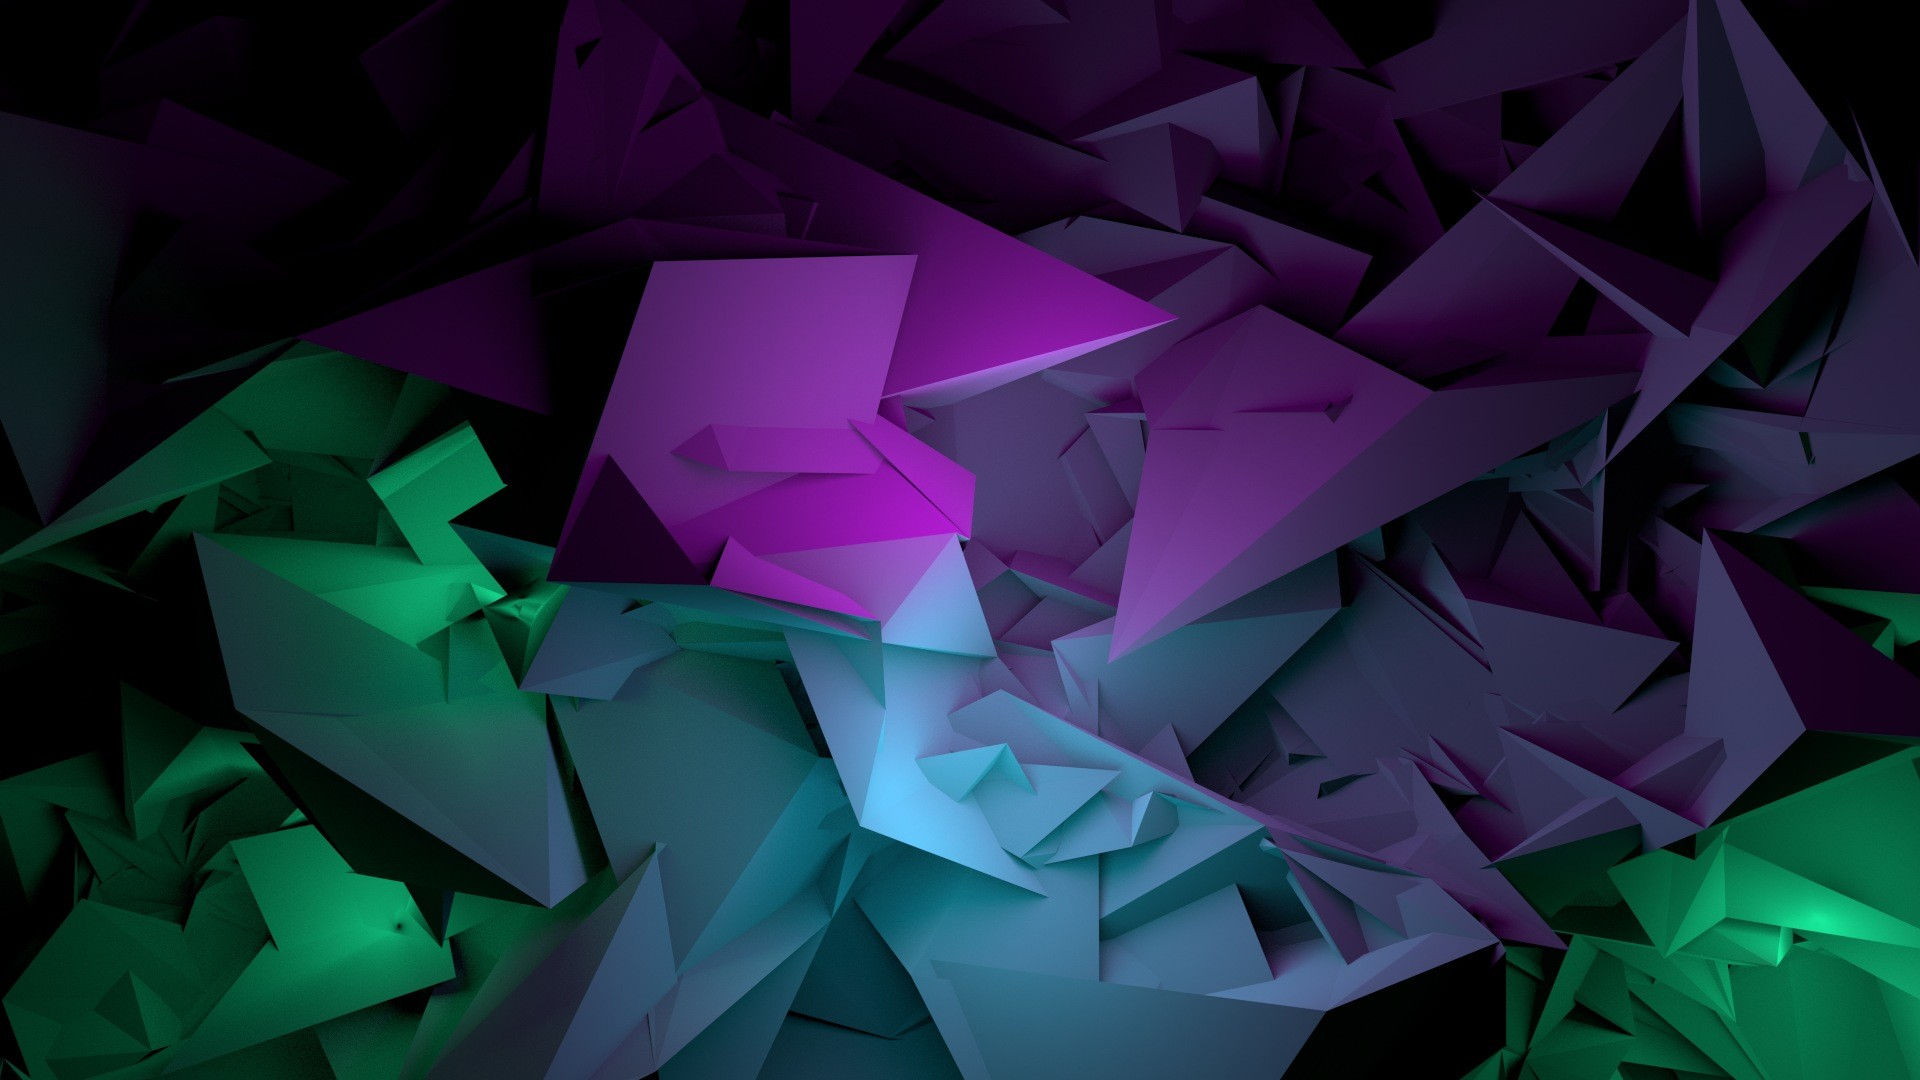 1920x1080 Wallpaper Abstract, Shapes, Purple, Green